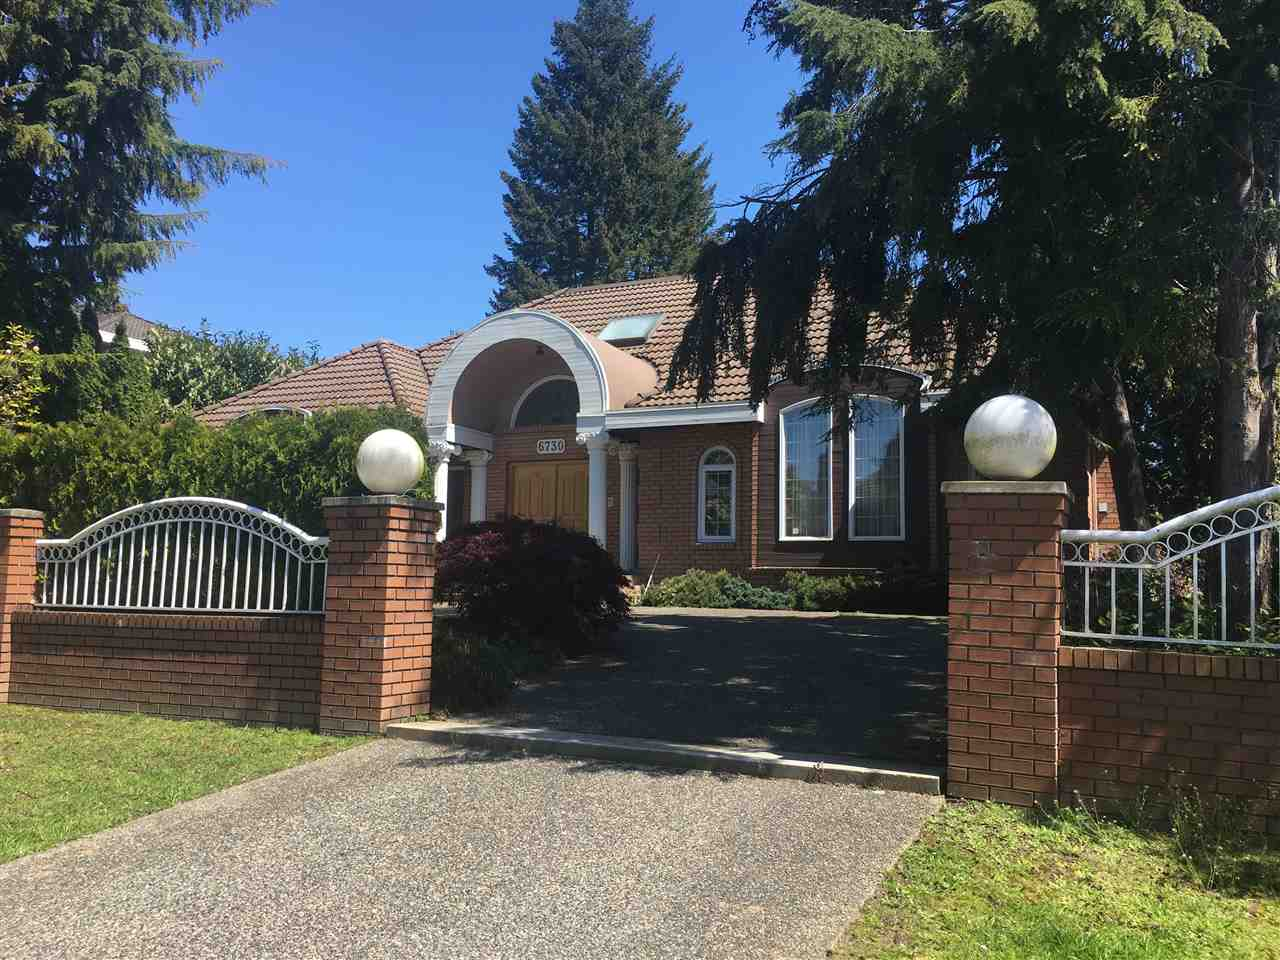 Main Photo: 6730 CHURCHILL Street in Vancouver: South Granville House for sale (Vancouver West)  : MLS® # R2153755